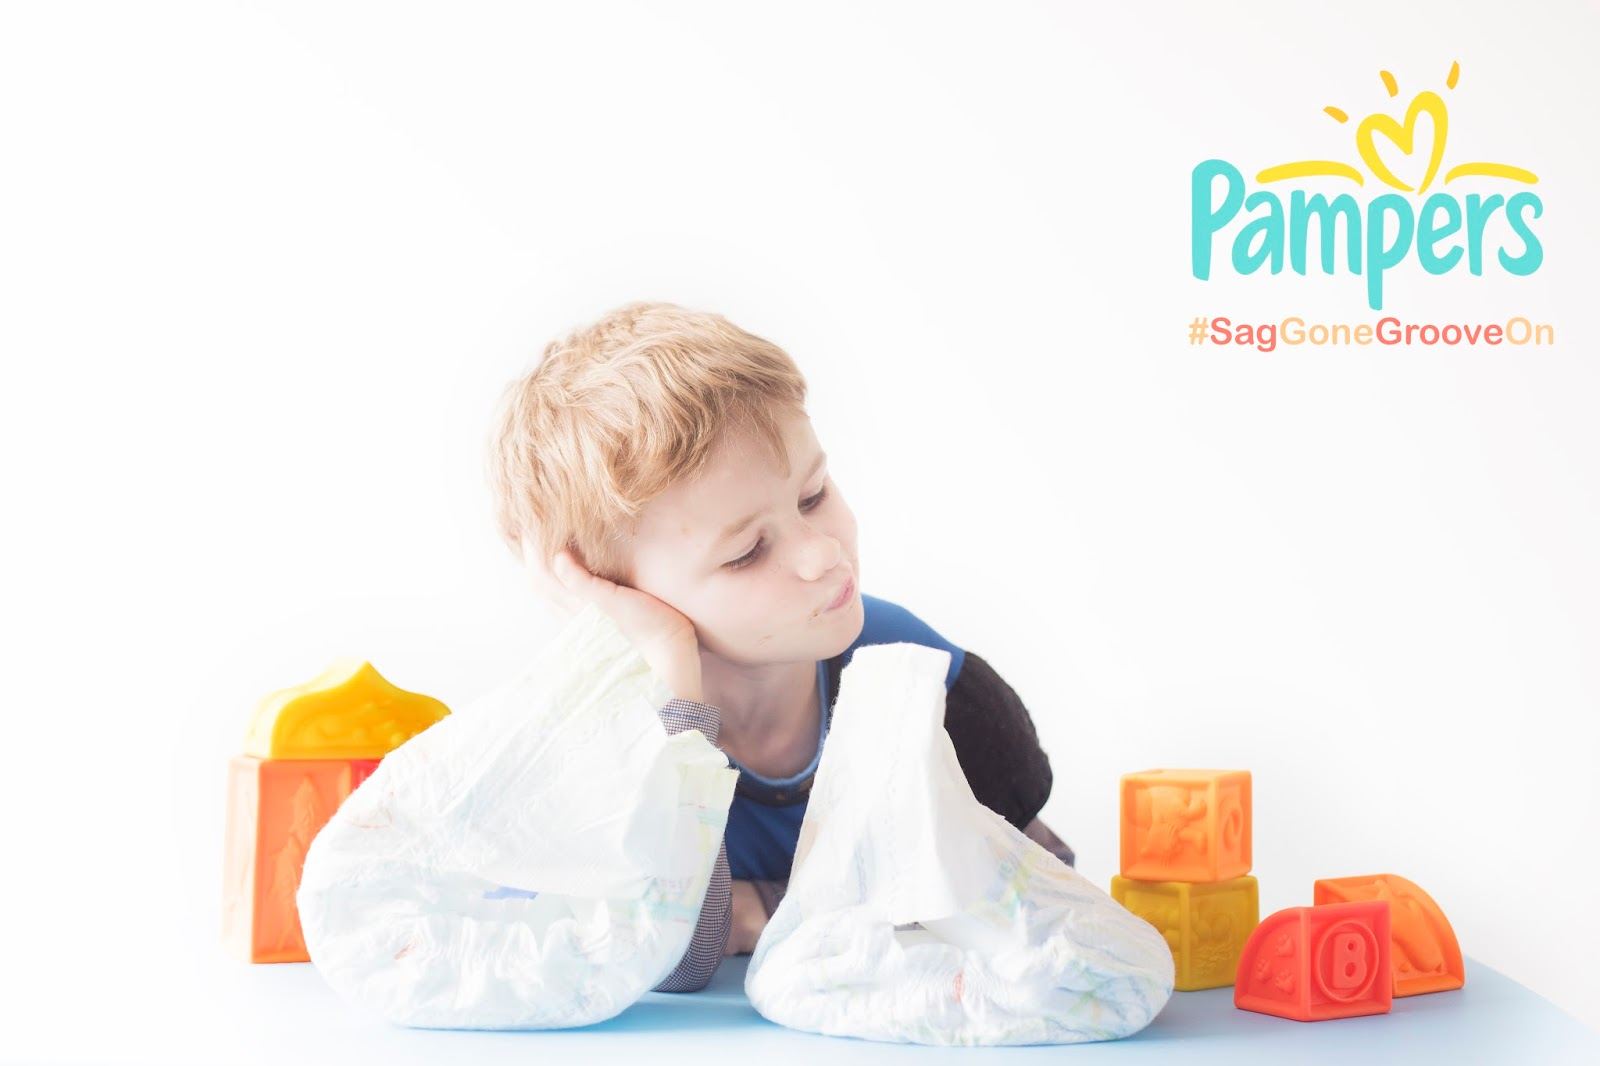 Pampers001